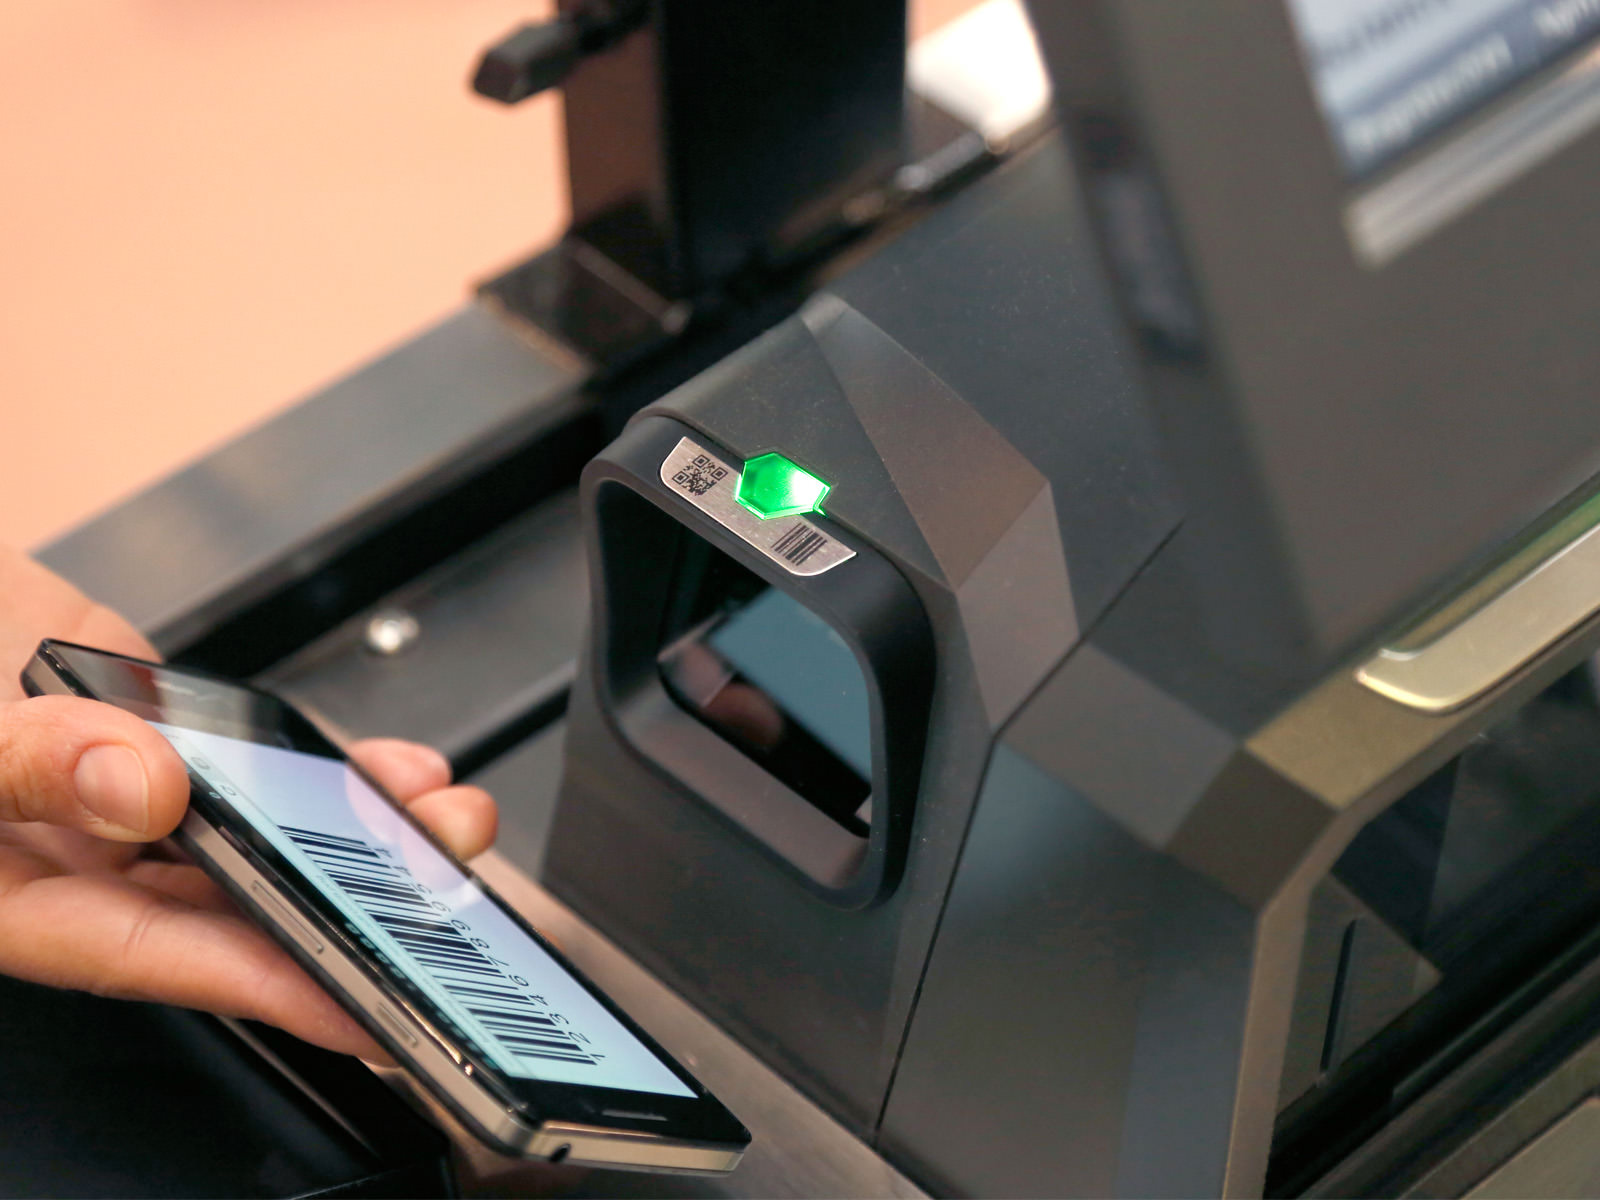 Presentation of a smart phone with barcode on screen to the side mounted barcode scanner